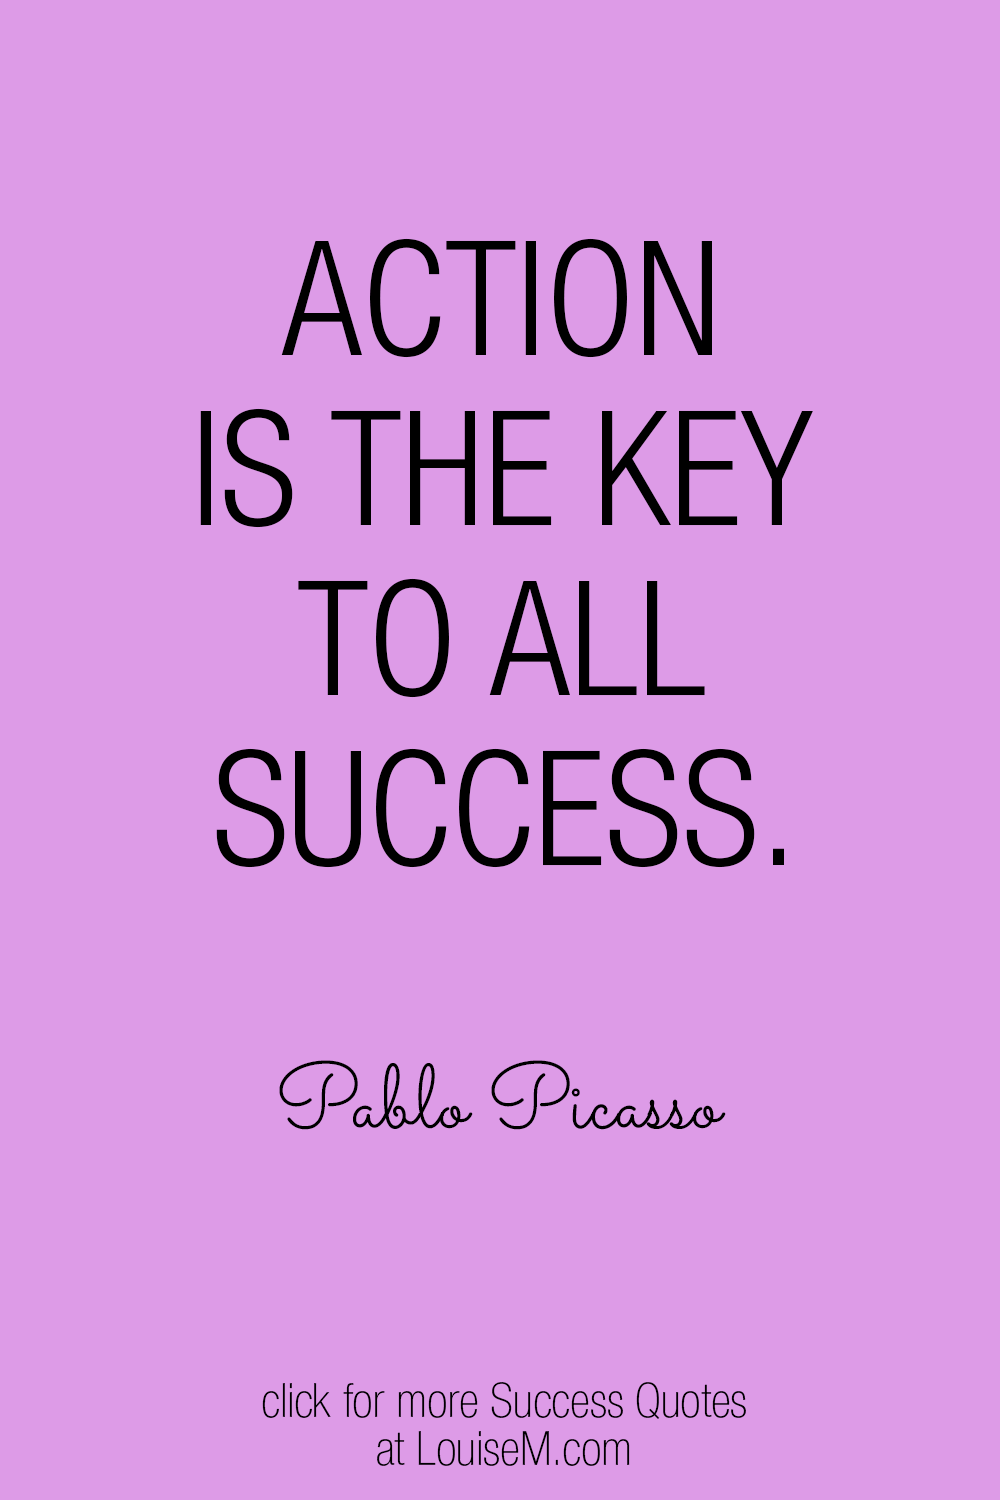 Pablo Picasso success quote on purple background